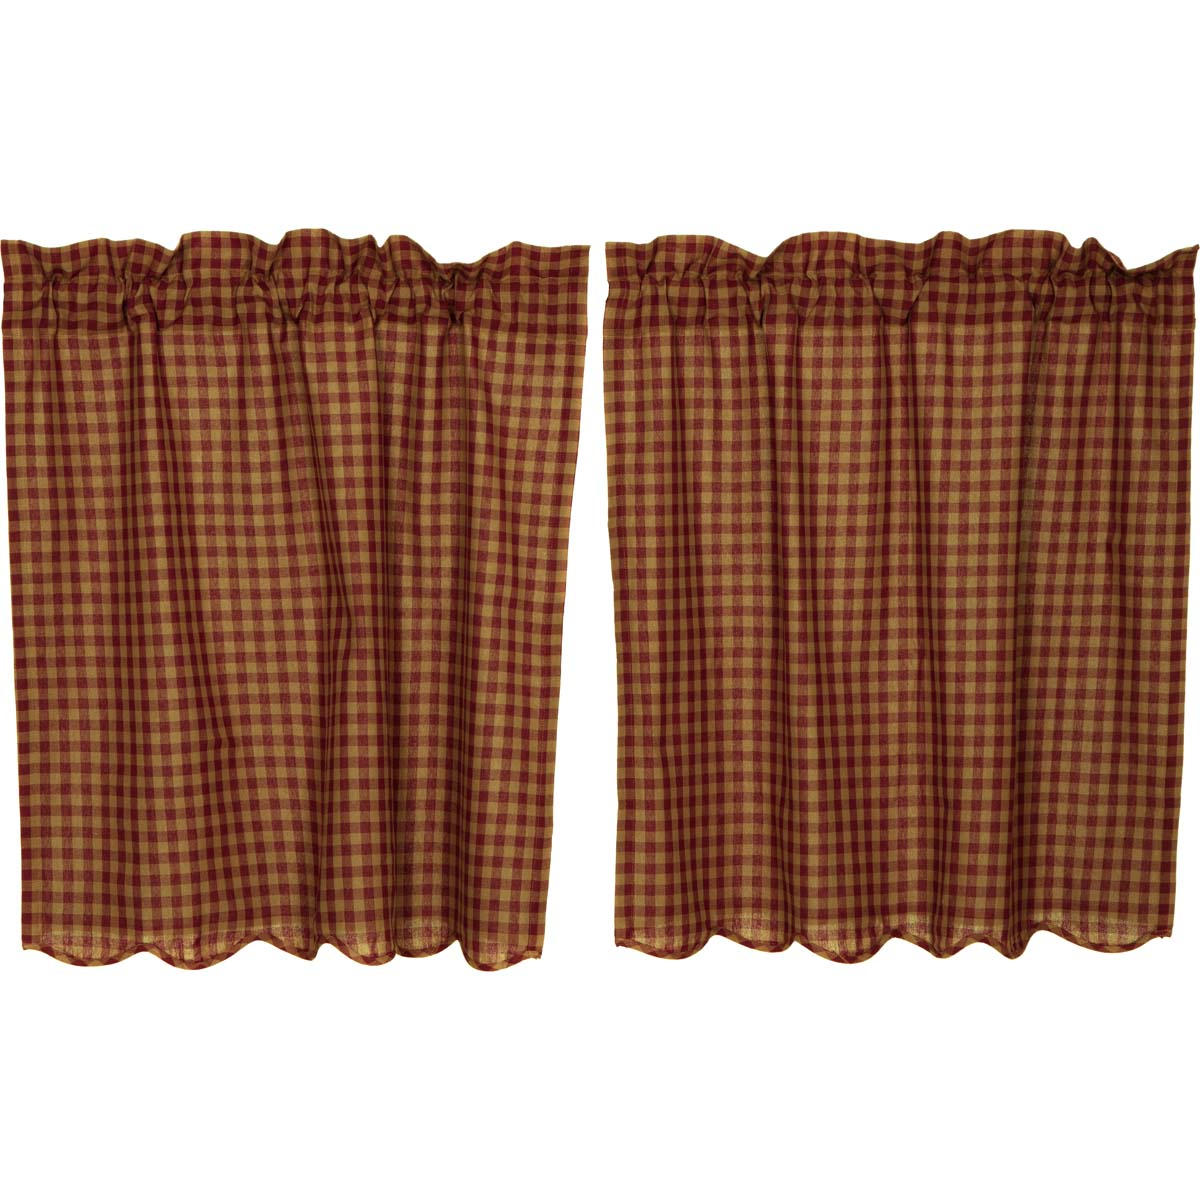 Burgundy Check Scalloped Tier Set of 2 L36xW36 - Woodrol